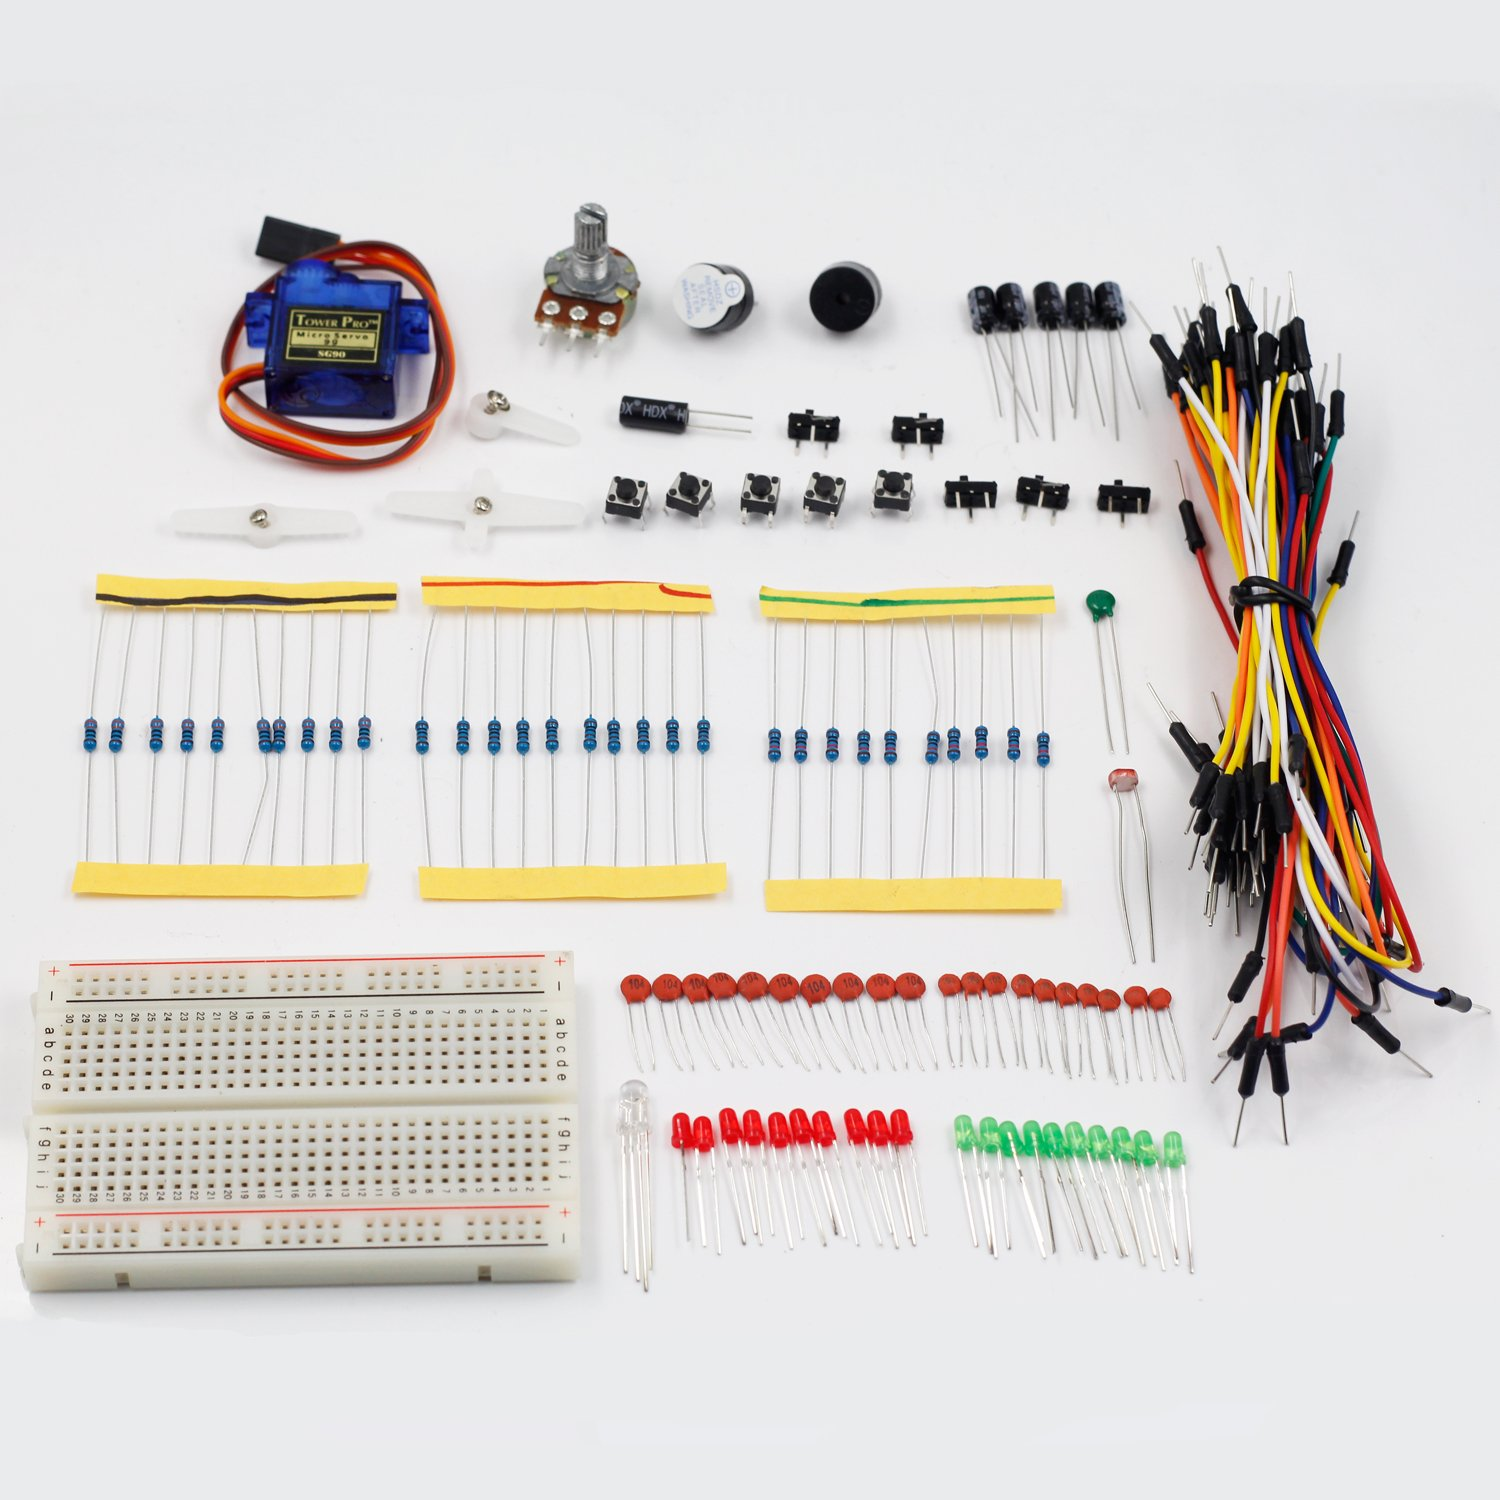 Sunfounder Sidekick Basic Starter Kit W Breadboard Small Circuits For Beginners Jumper Wires Color Led Resistors Buzzer Arduino Uno R3 Mega2560 Mega328 Nano